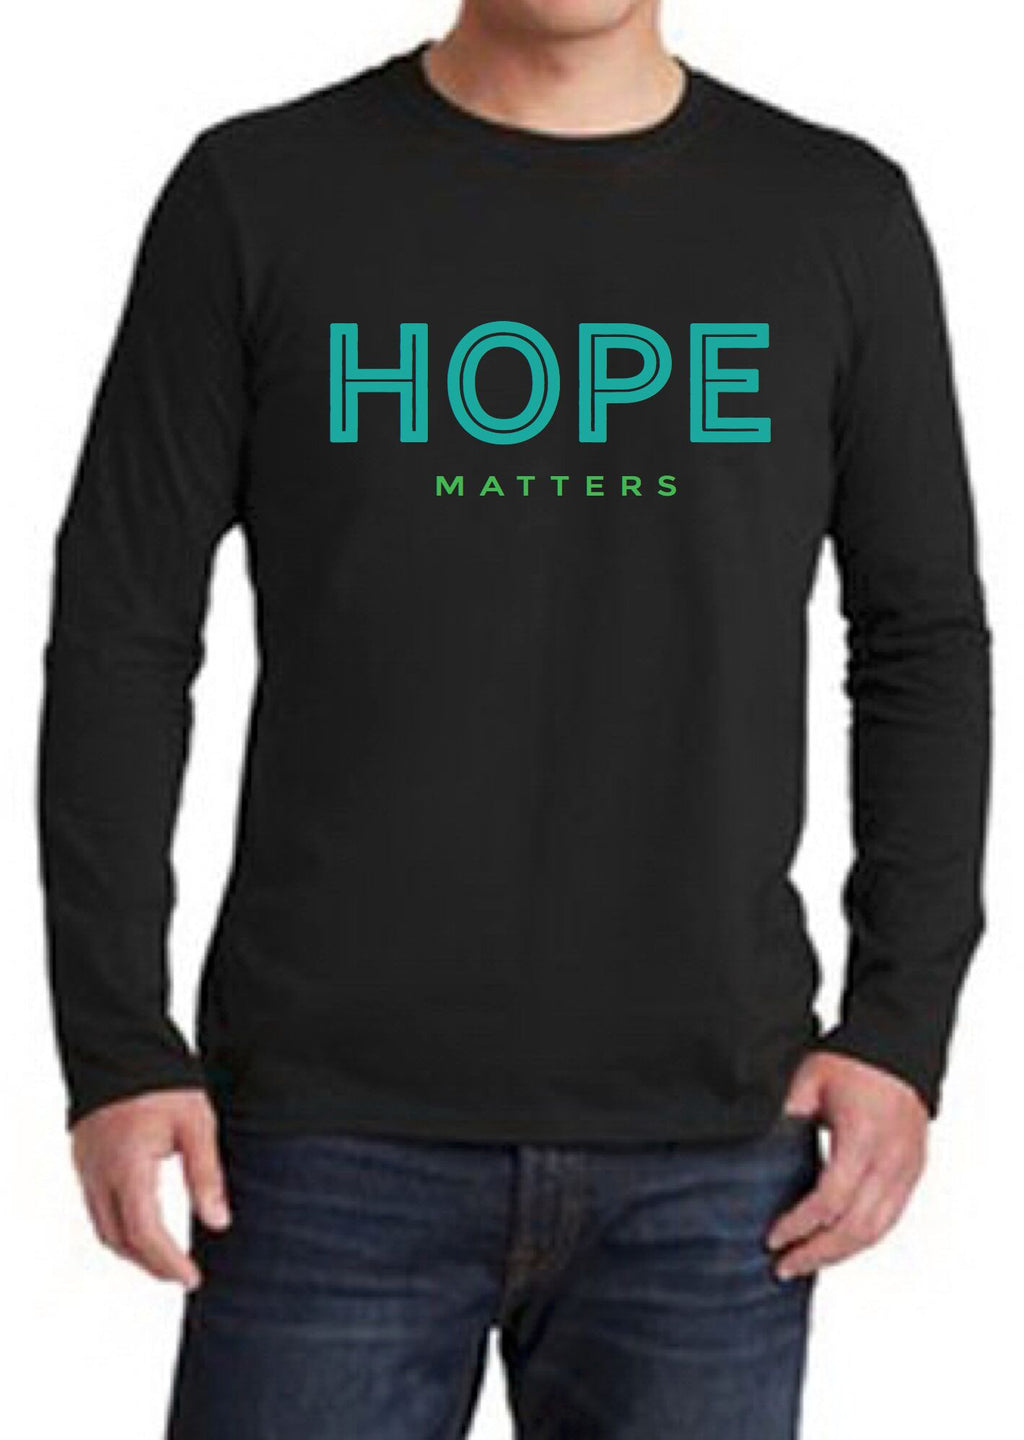 Hope Matters Unisex Long Sleeve Tee